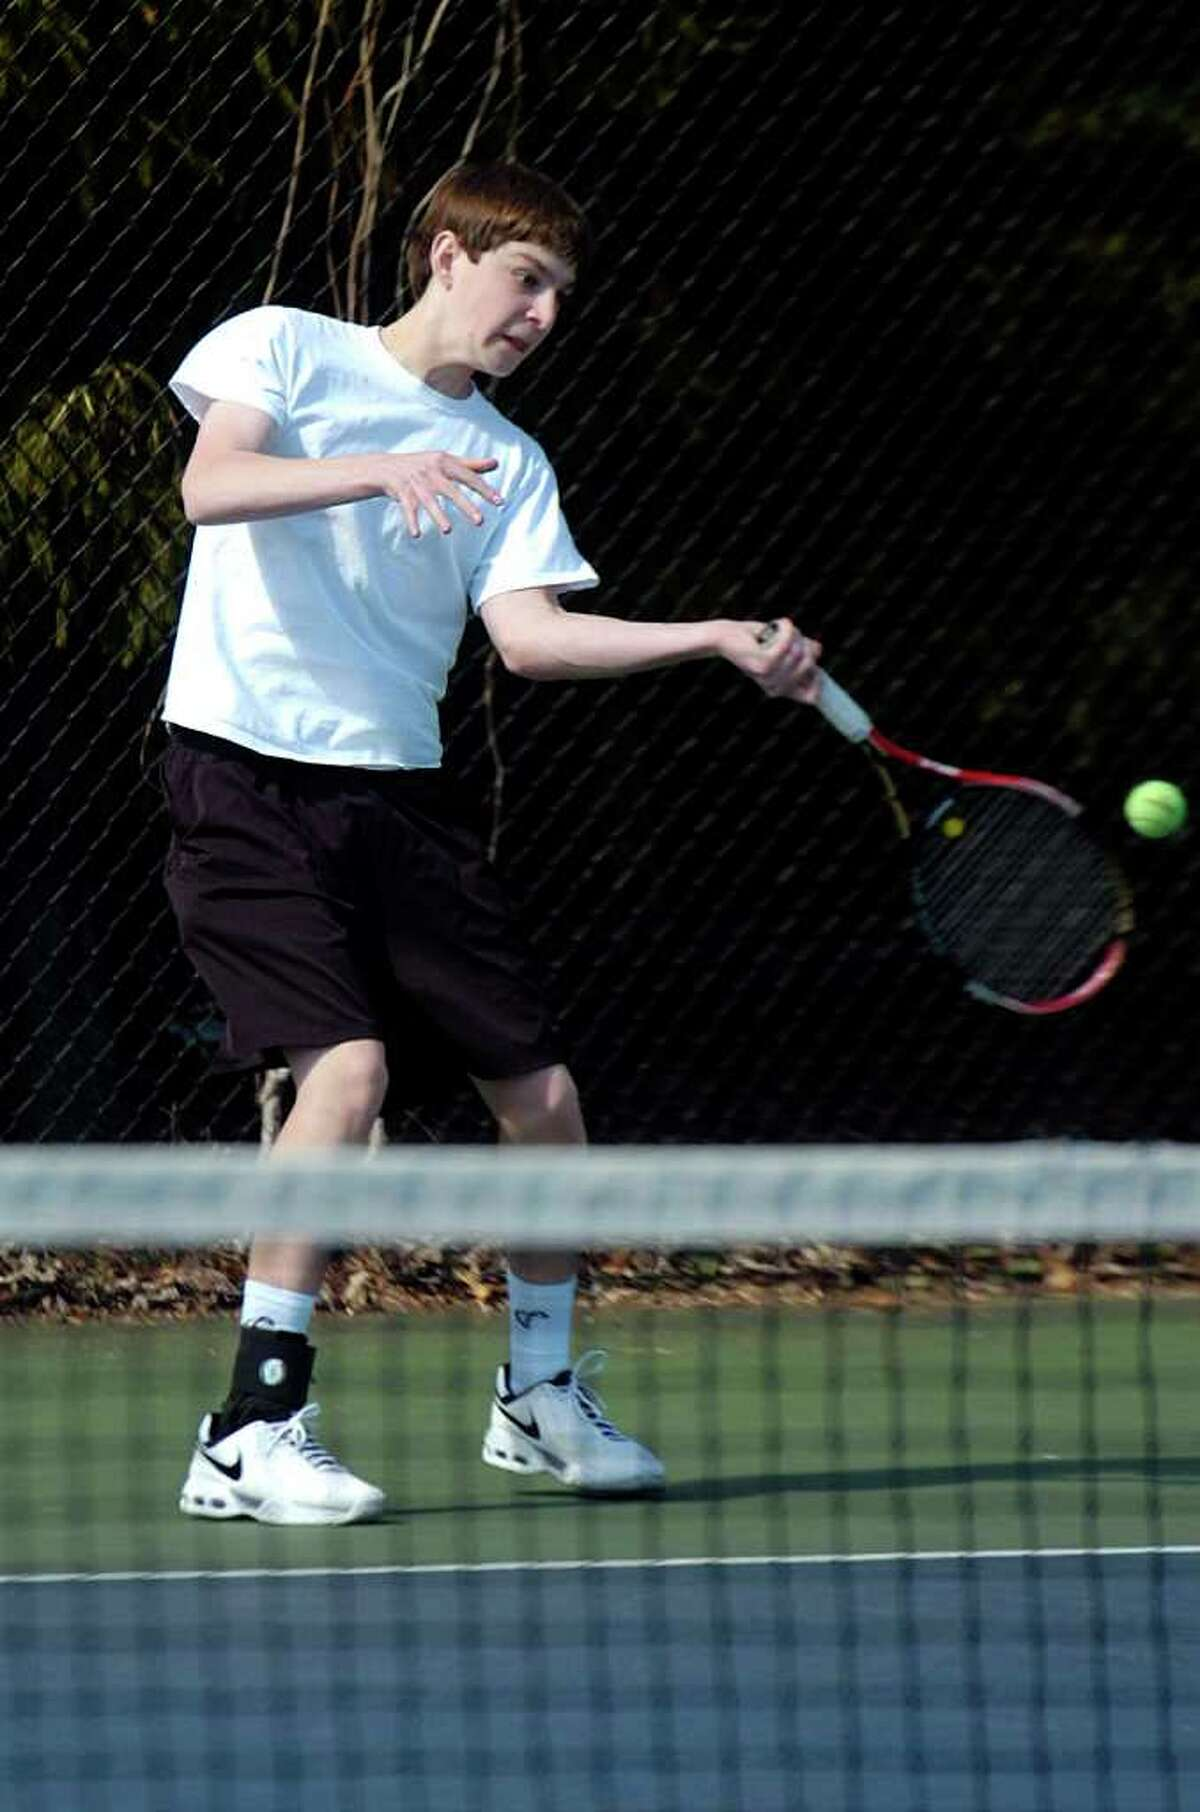 Grahm Hyman plays during tennis practice at Staples High School on Tuesday, March 29, 2011.